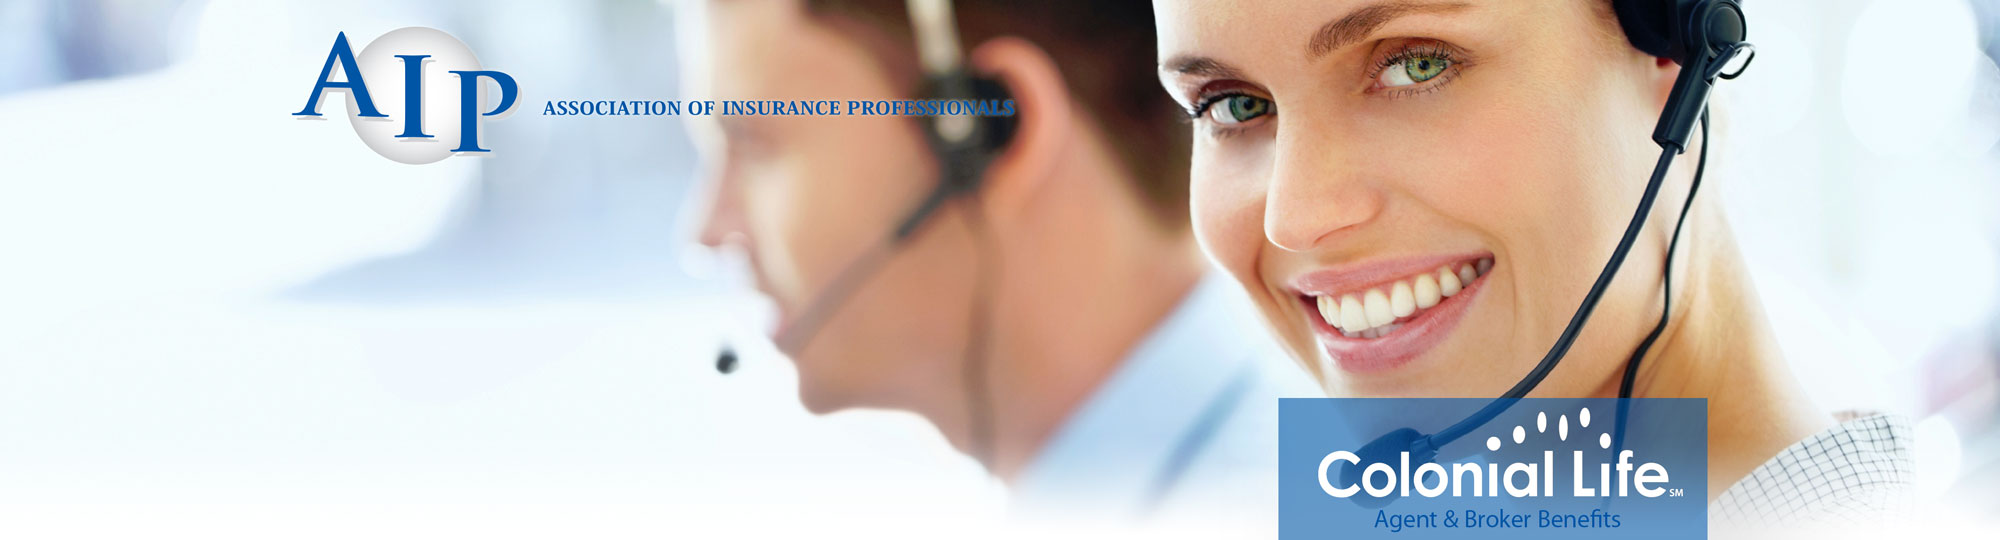 Contact the Association of Insurance Professionals (AIP)